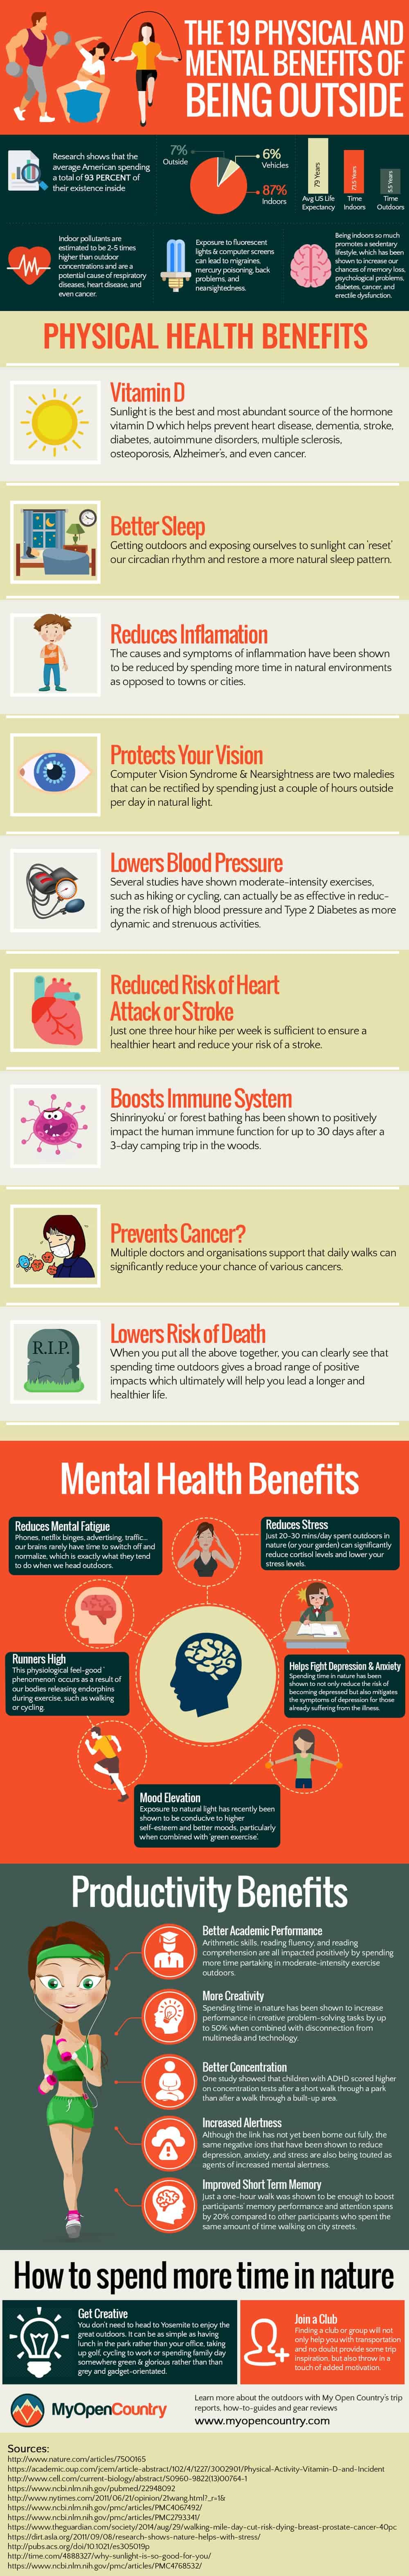 HealthBenefitsOutside_infographic_comp